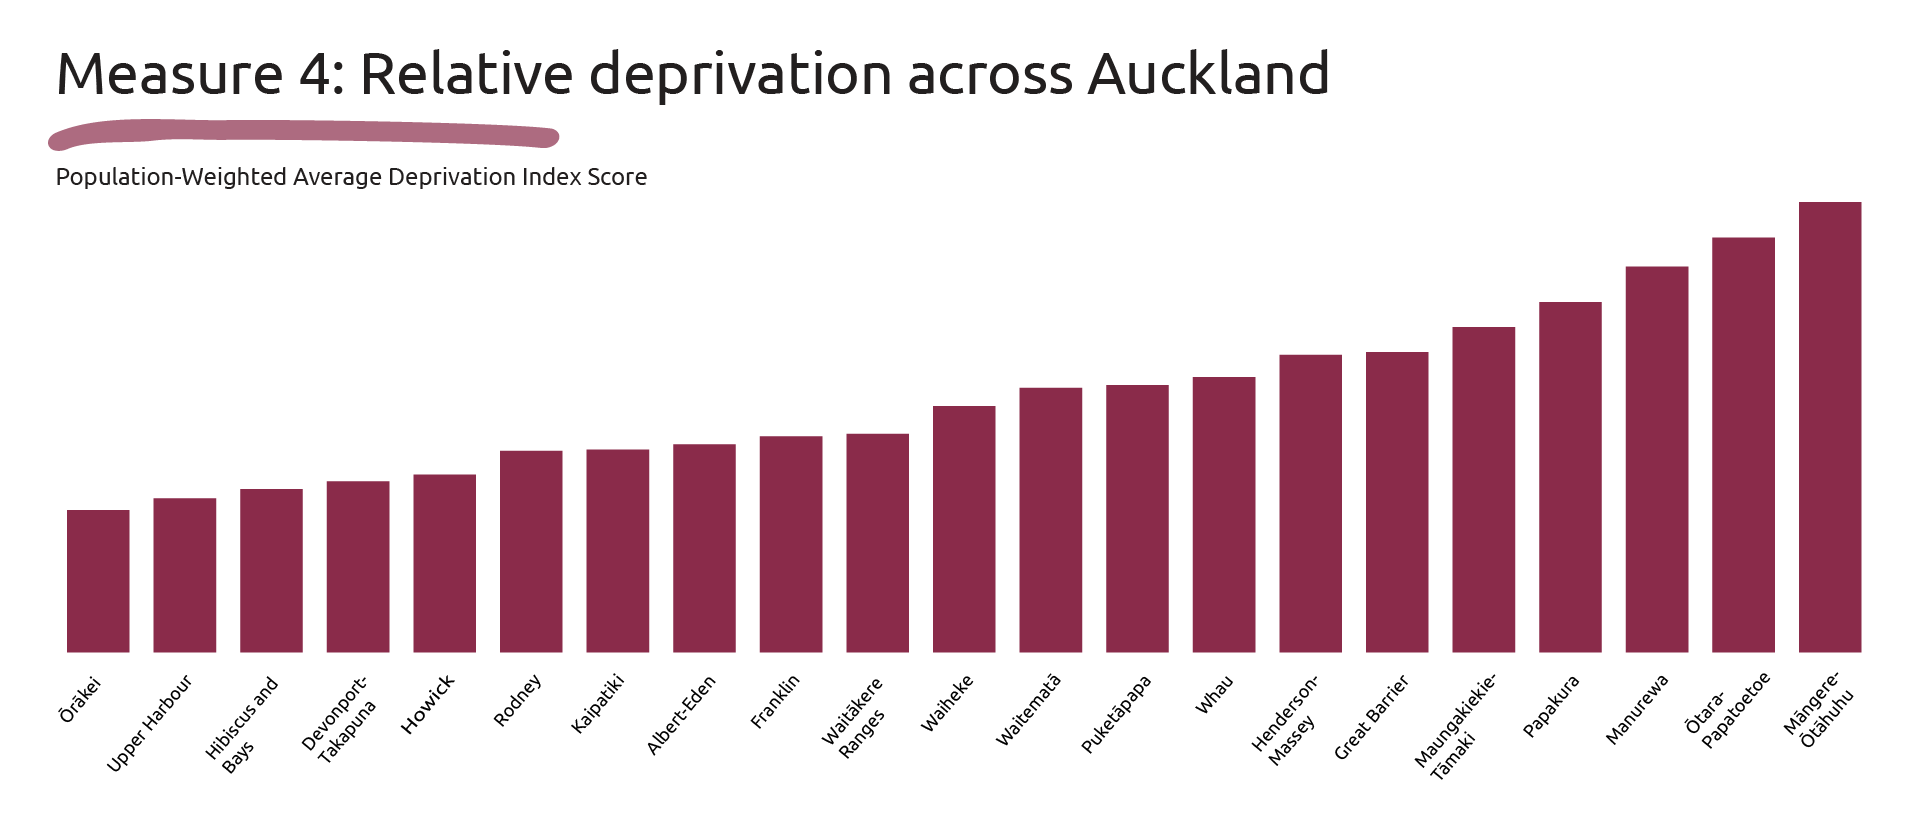 Graphic showing the Population-Weighted Average Deprivation Index Score for suburbs across the Auckland region.